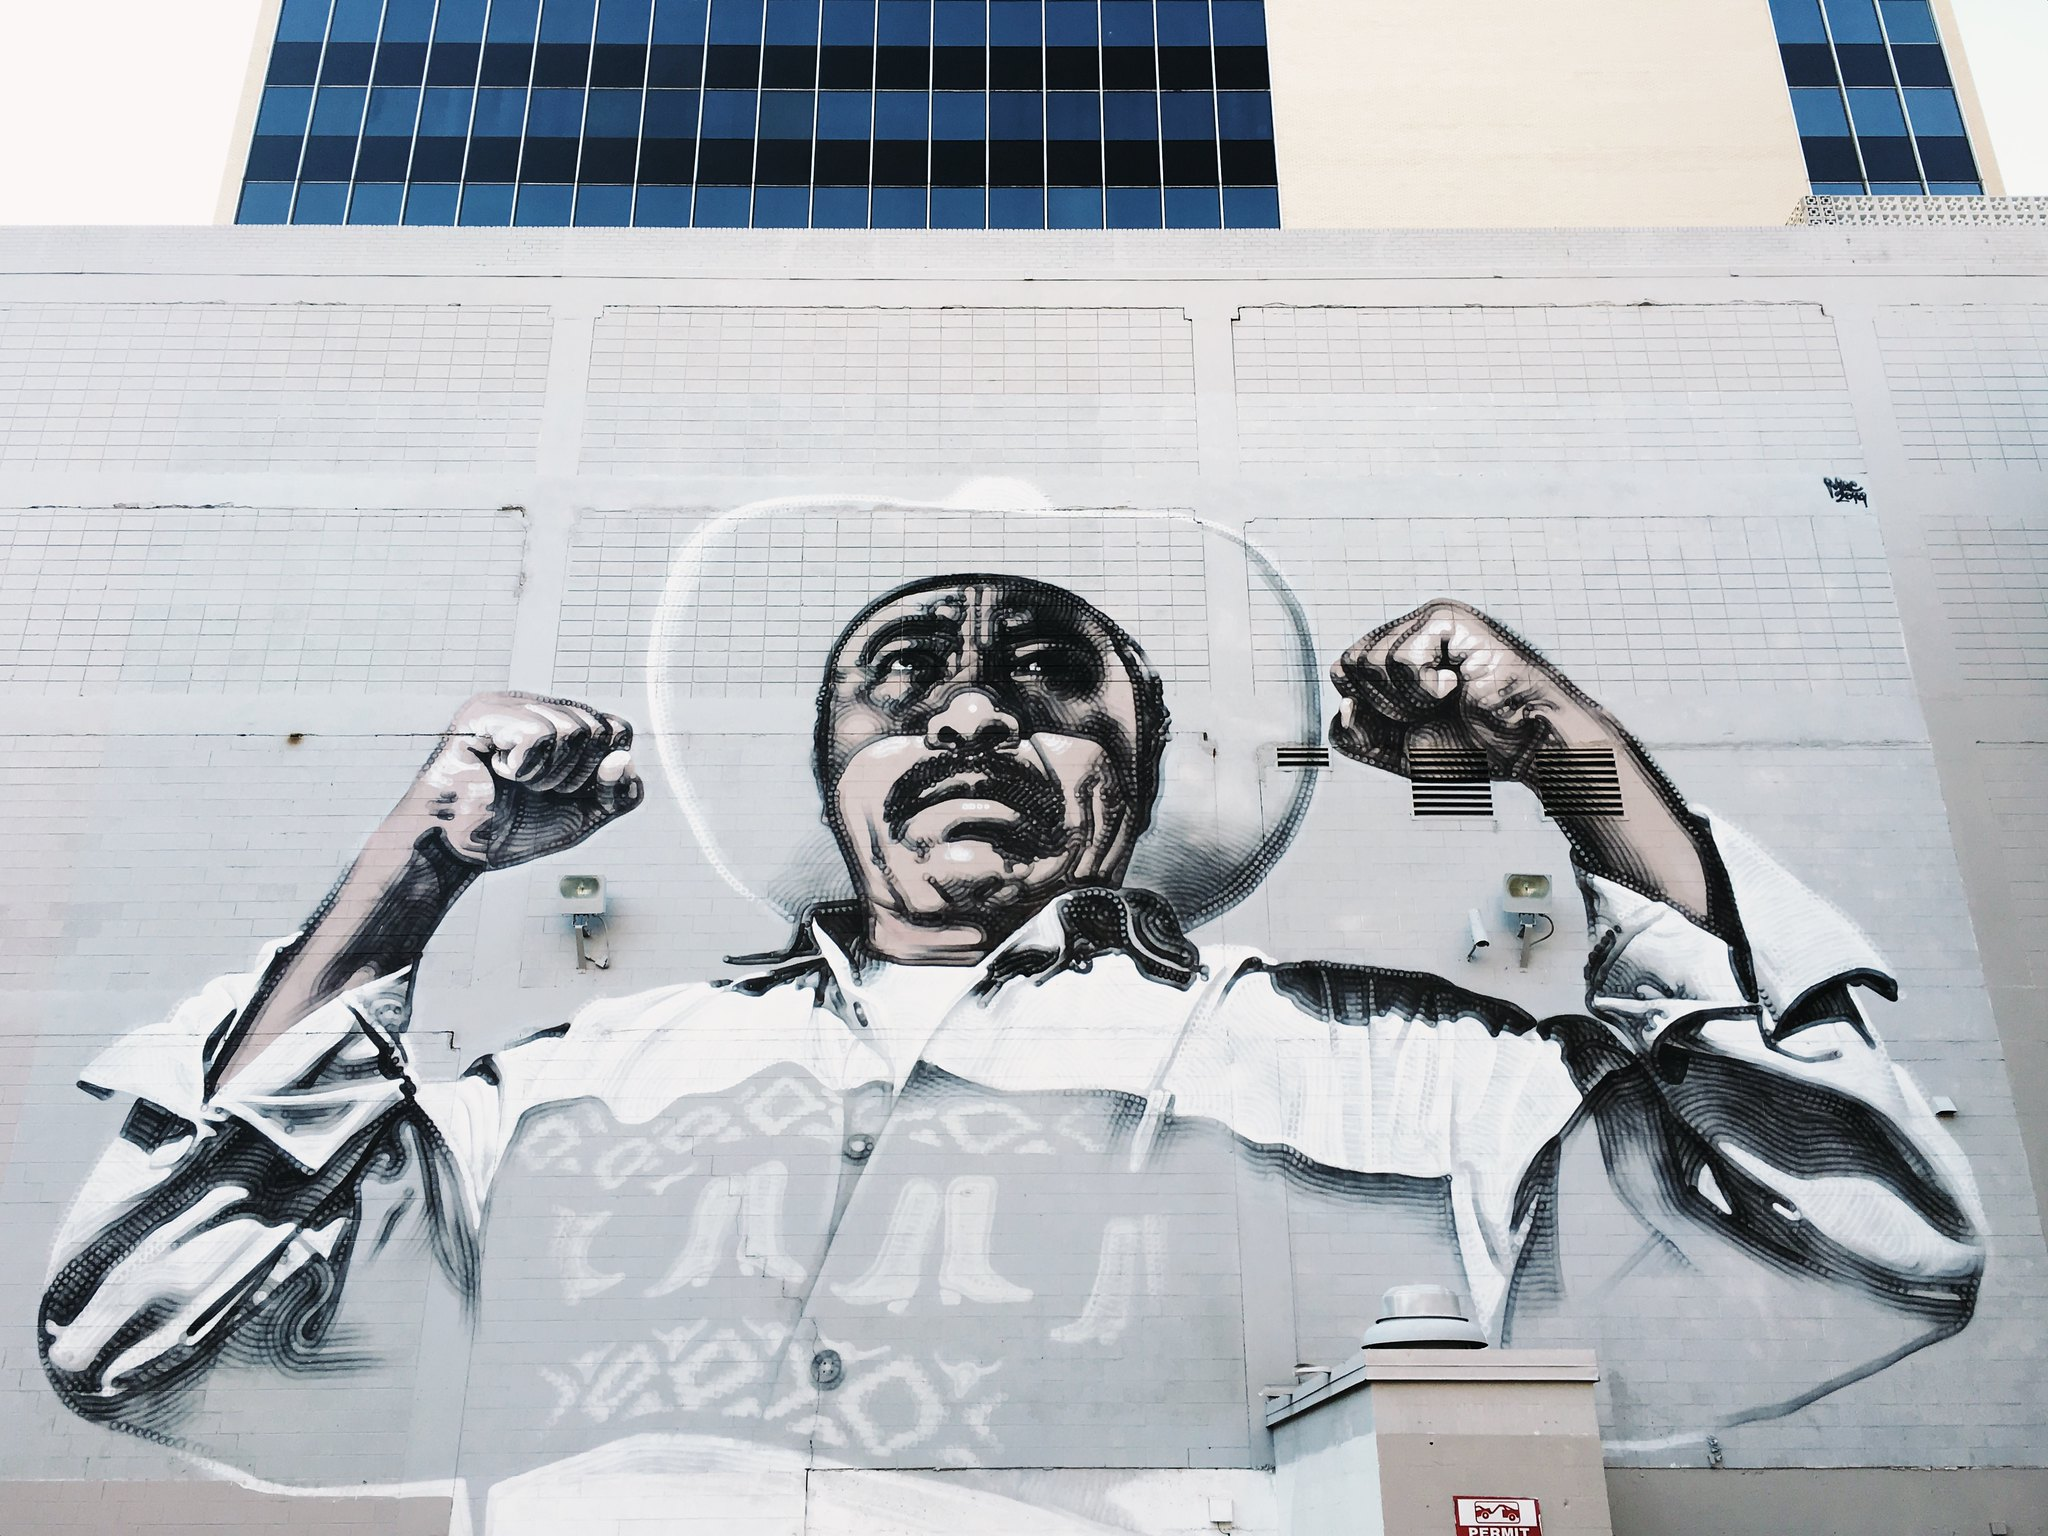 Mural of vaquero showing strength